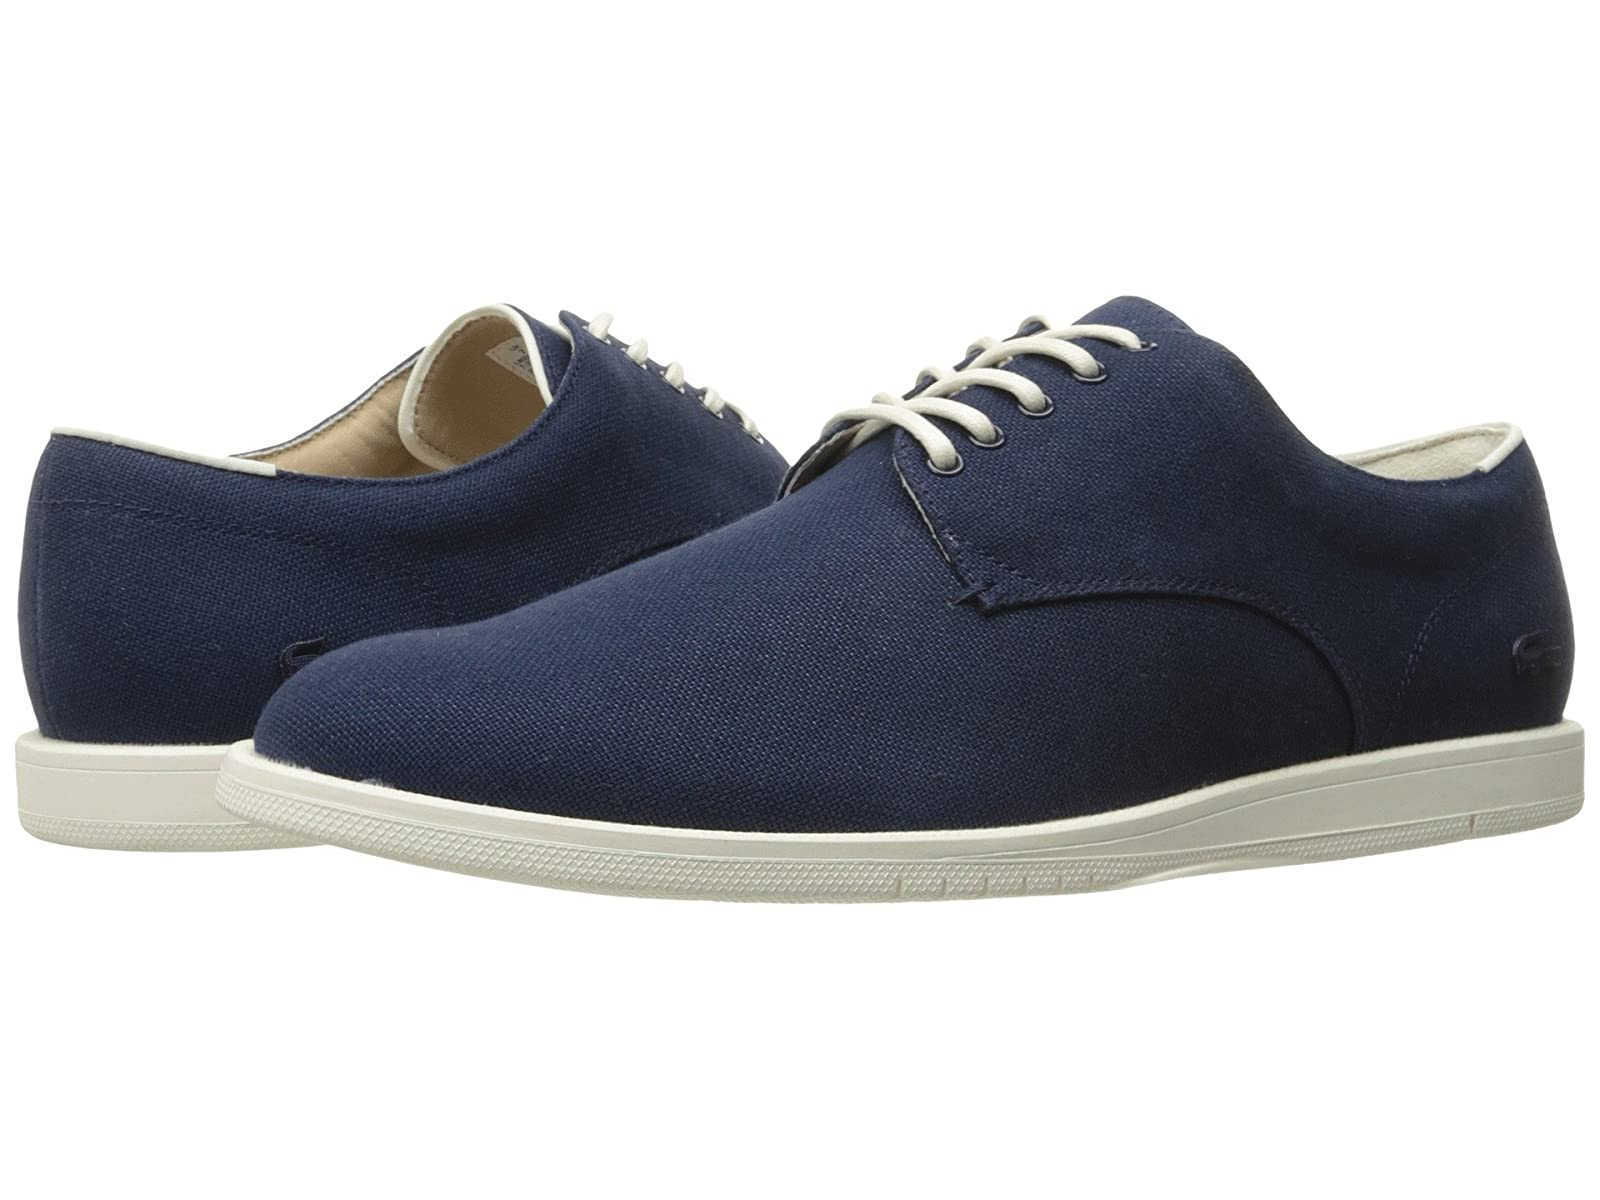 Lacoste Laccord 217 1Cheap and distinctive eye-catching shoes